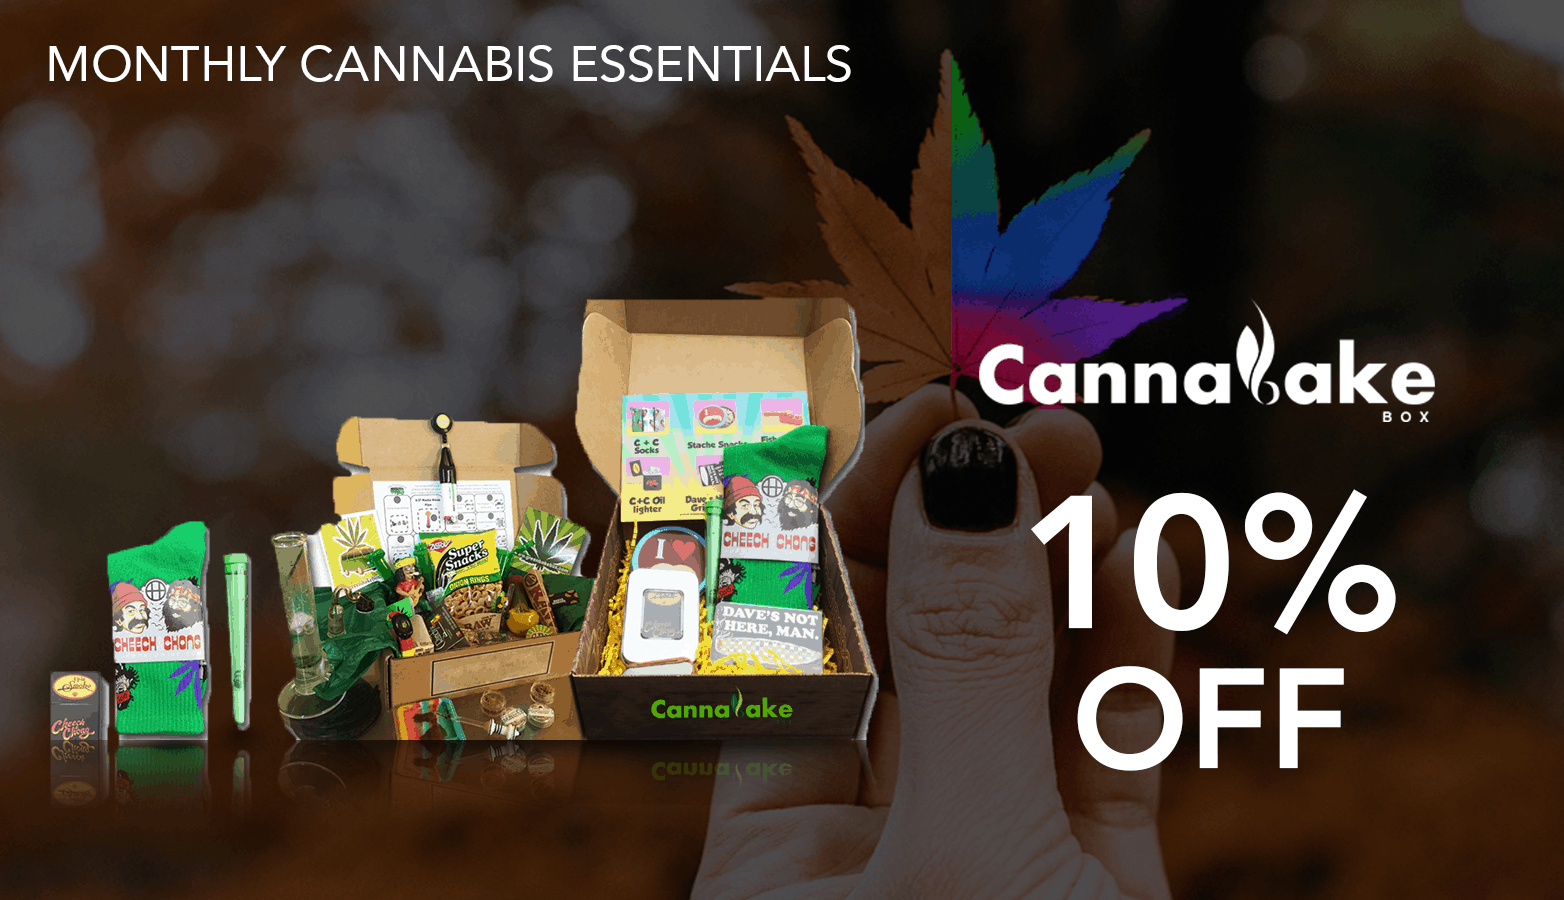 CannaBakeBox Coupon Code discounts promos save on cannabis online Website Redesign